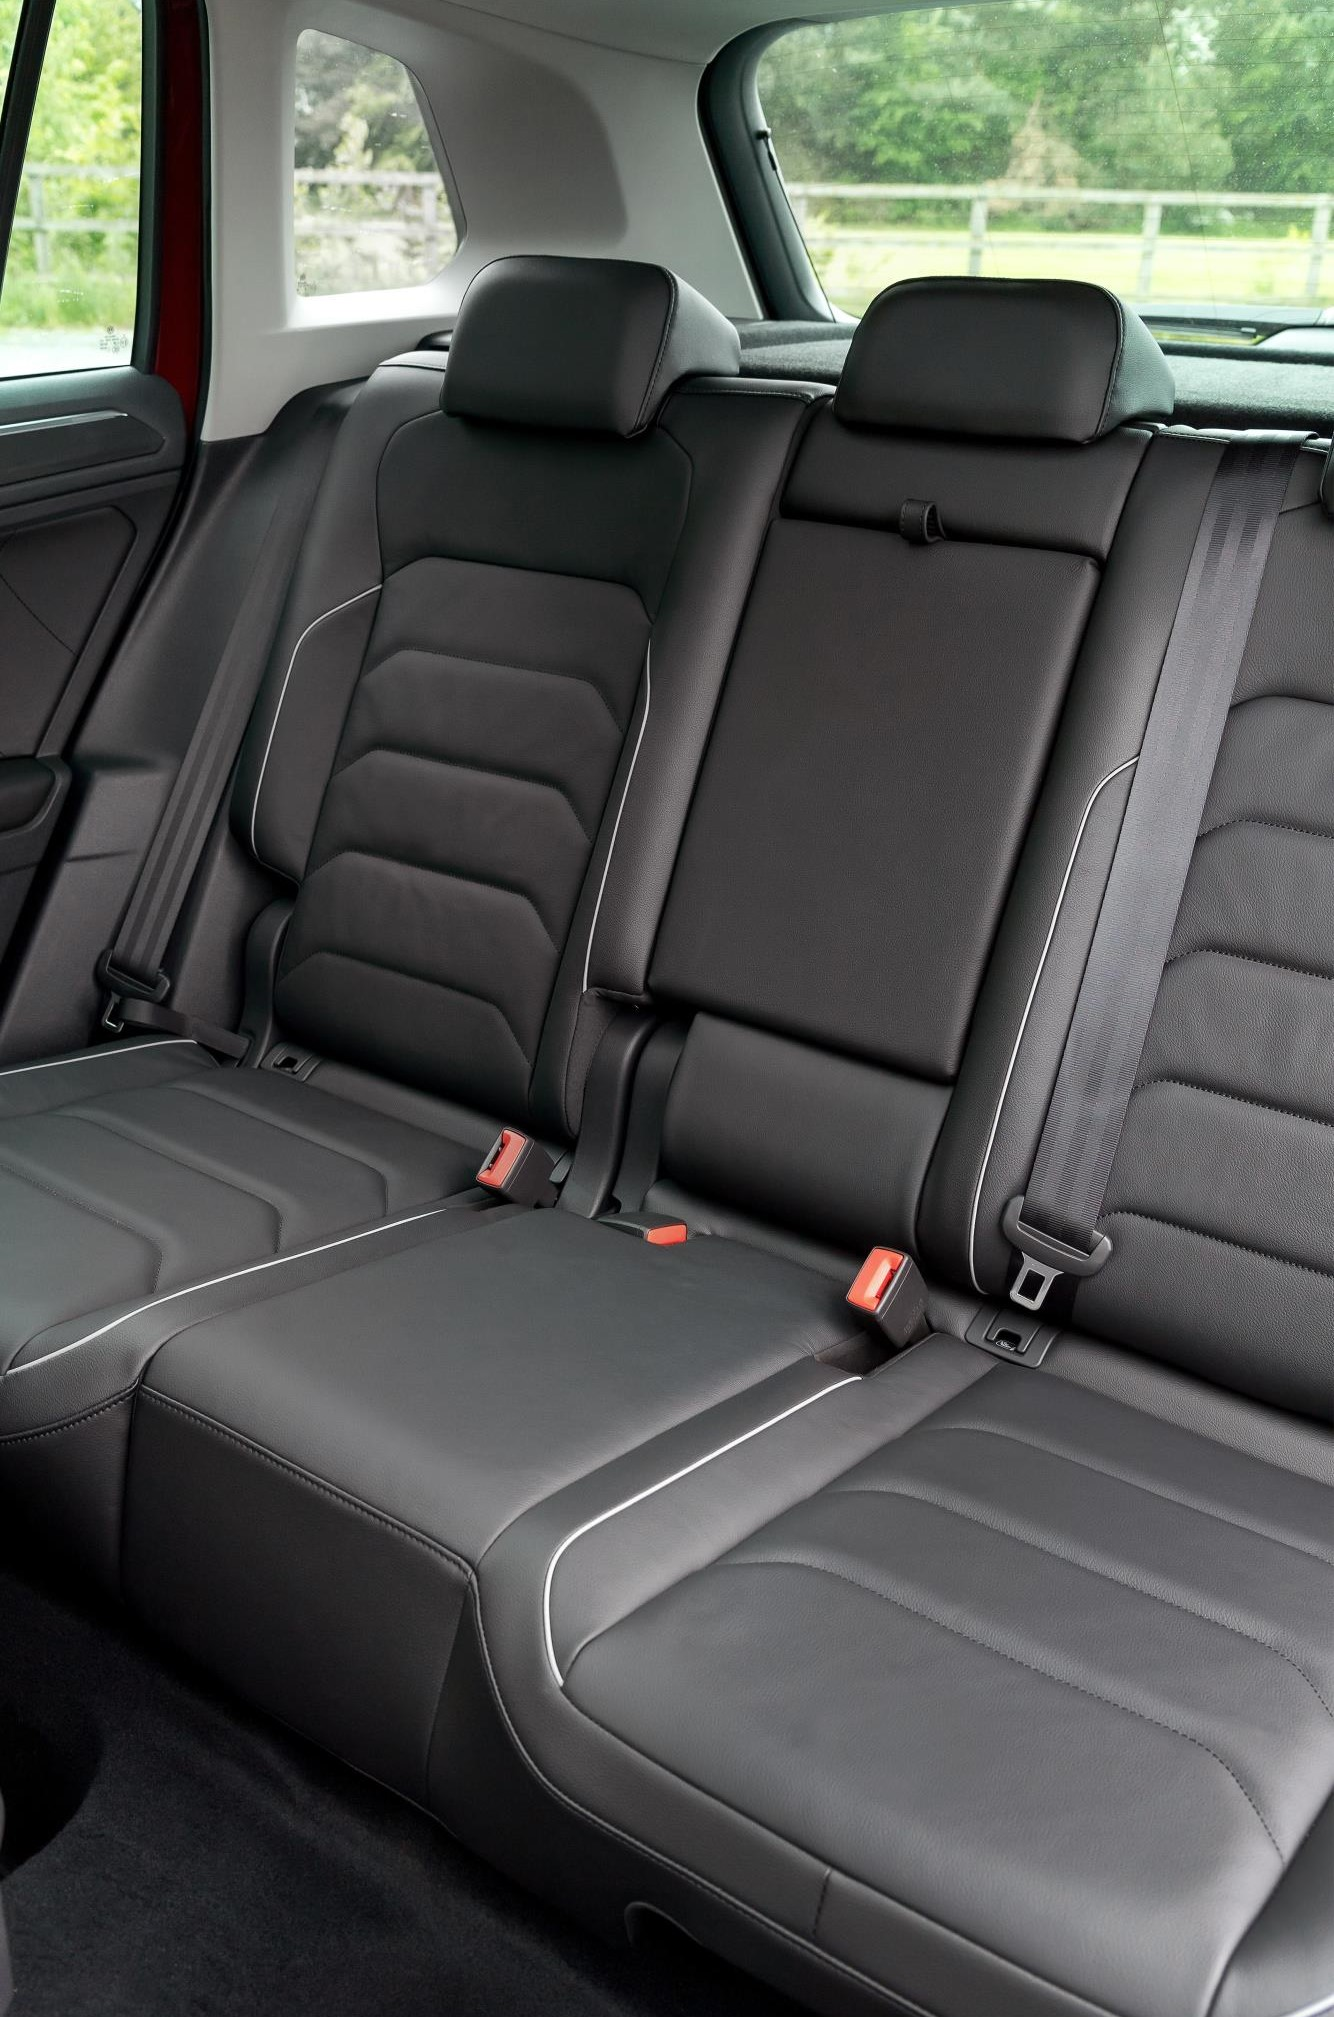 VW Tiguan rear seats